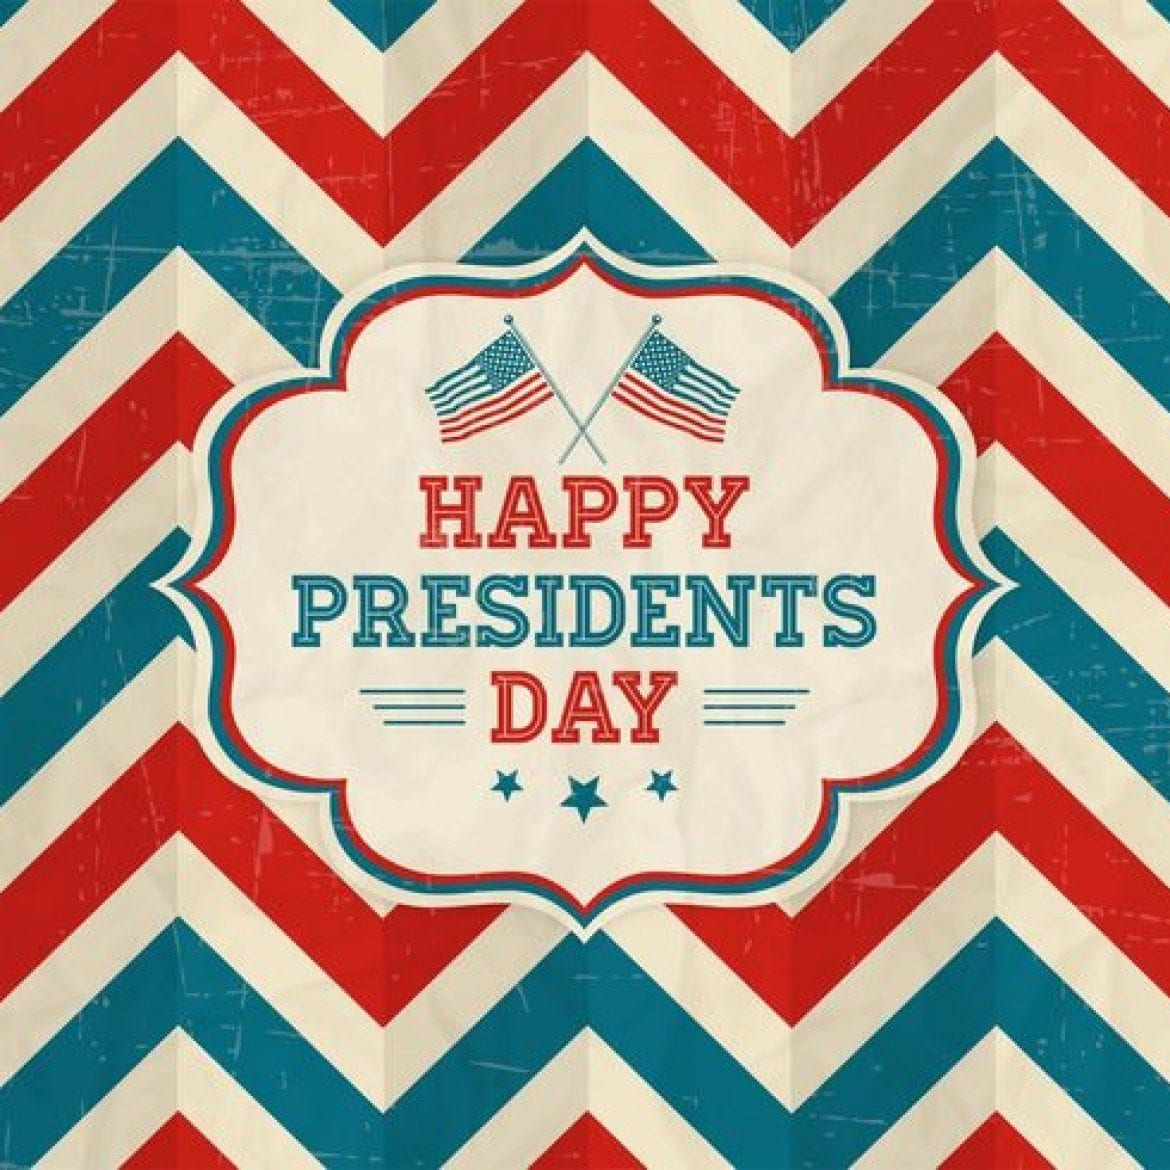 wpid-free-vector-happy-presidents-day-retro-background-1170x1170